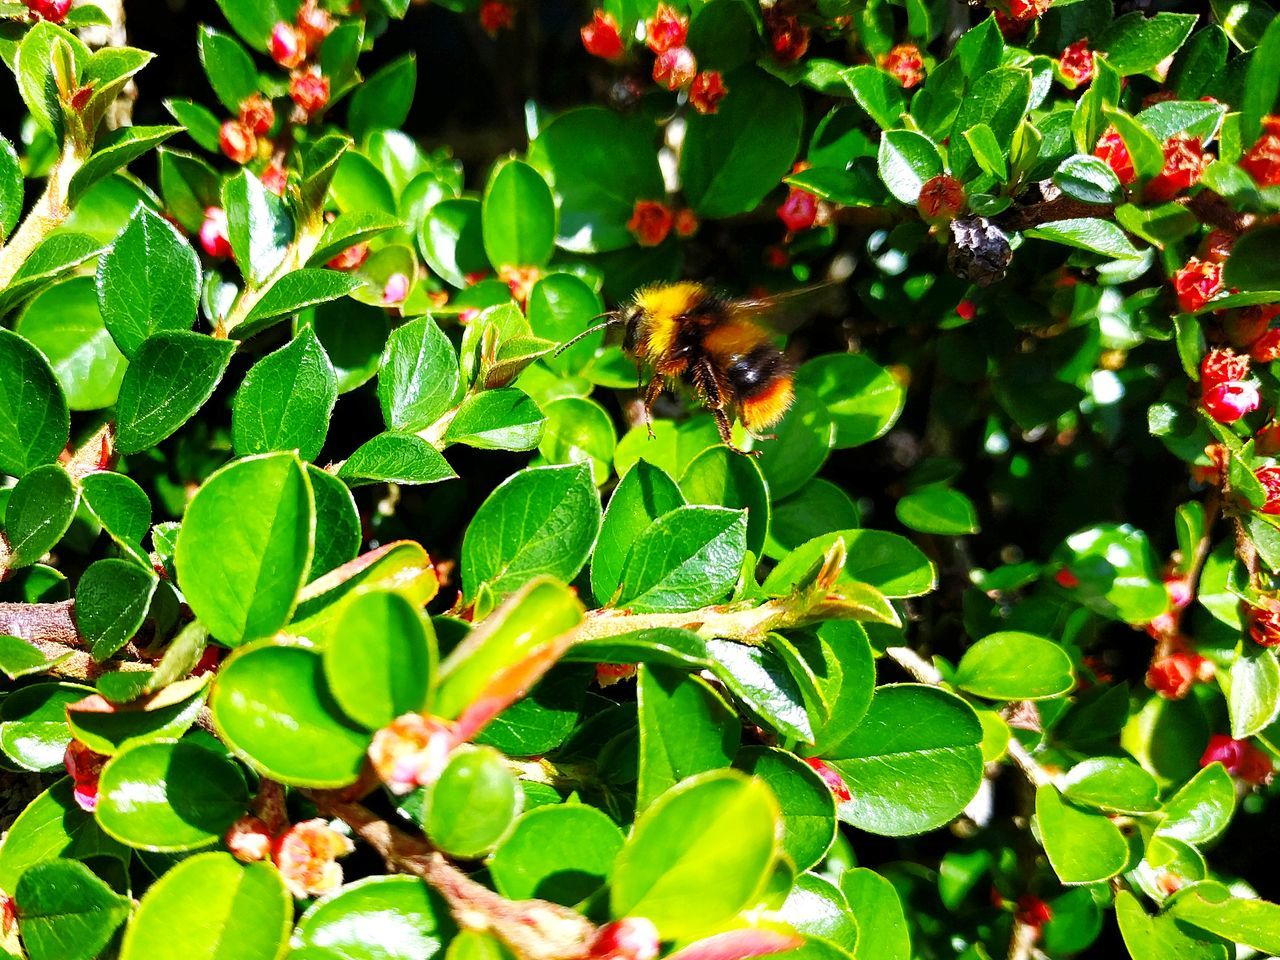 Worker Bee Leaf Nature One Animal Green Color No People Plant Animals In The Wild Growth Outdoors Animal Wildlife Animal Themes Day Close-up Beauty In Nature Freshness Bee Buzzing Bee Pollen Foraging Endangered  Black And Yellow  Red Flower Green Bush Green Leaves